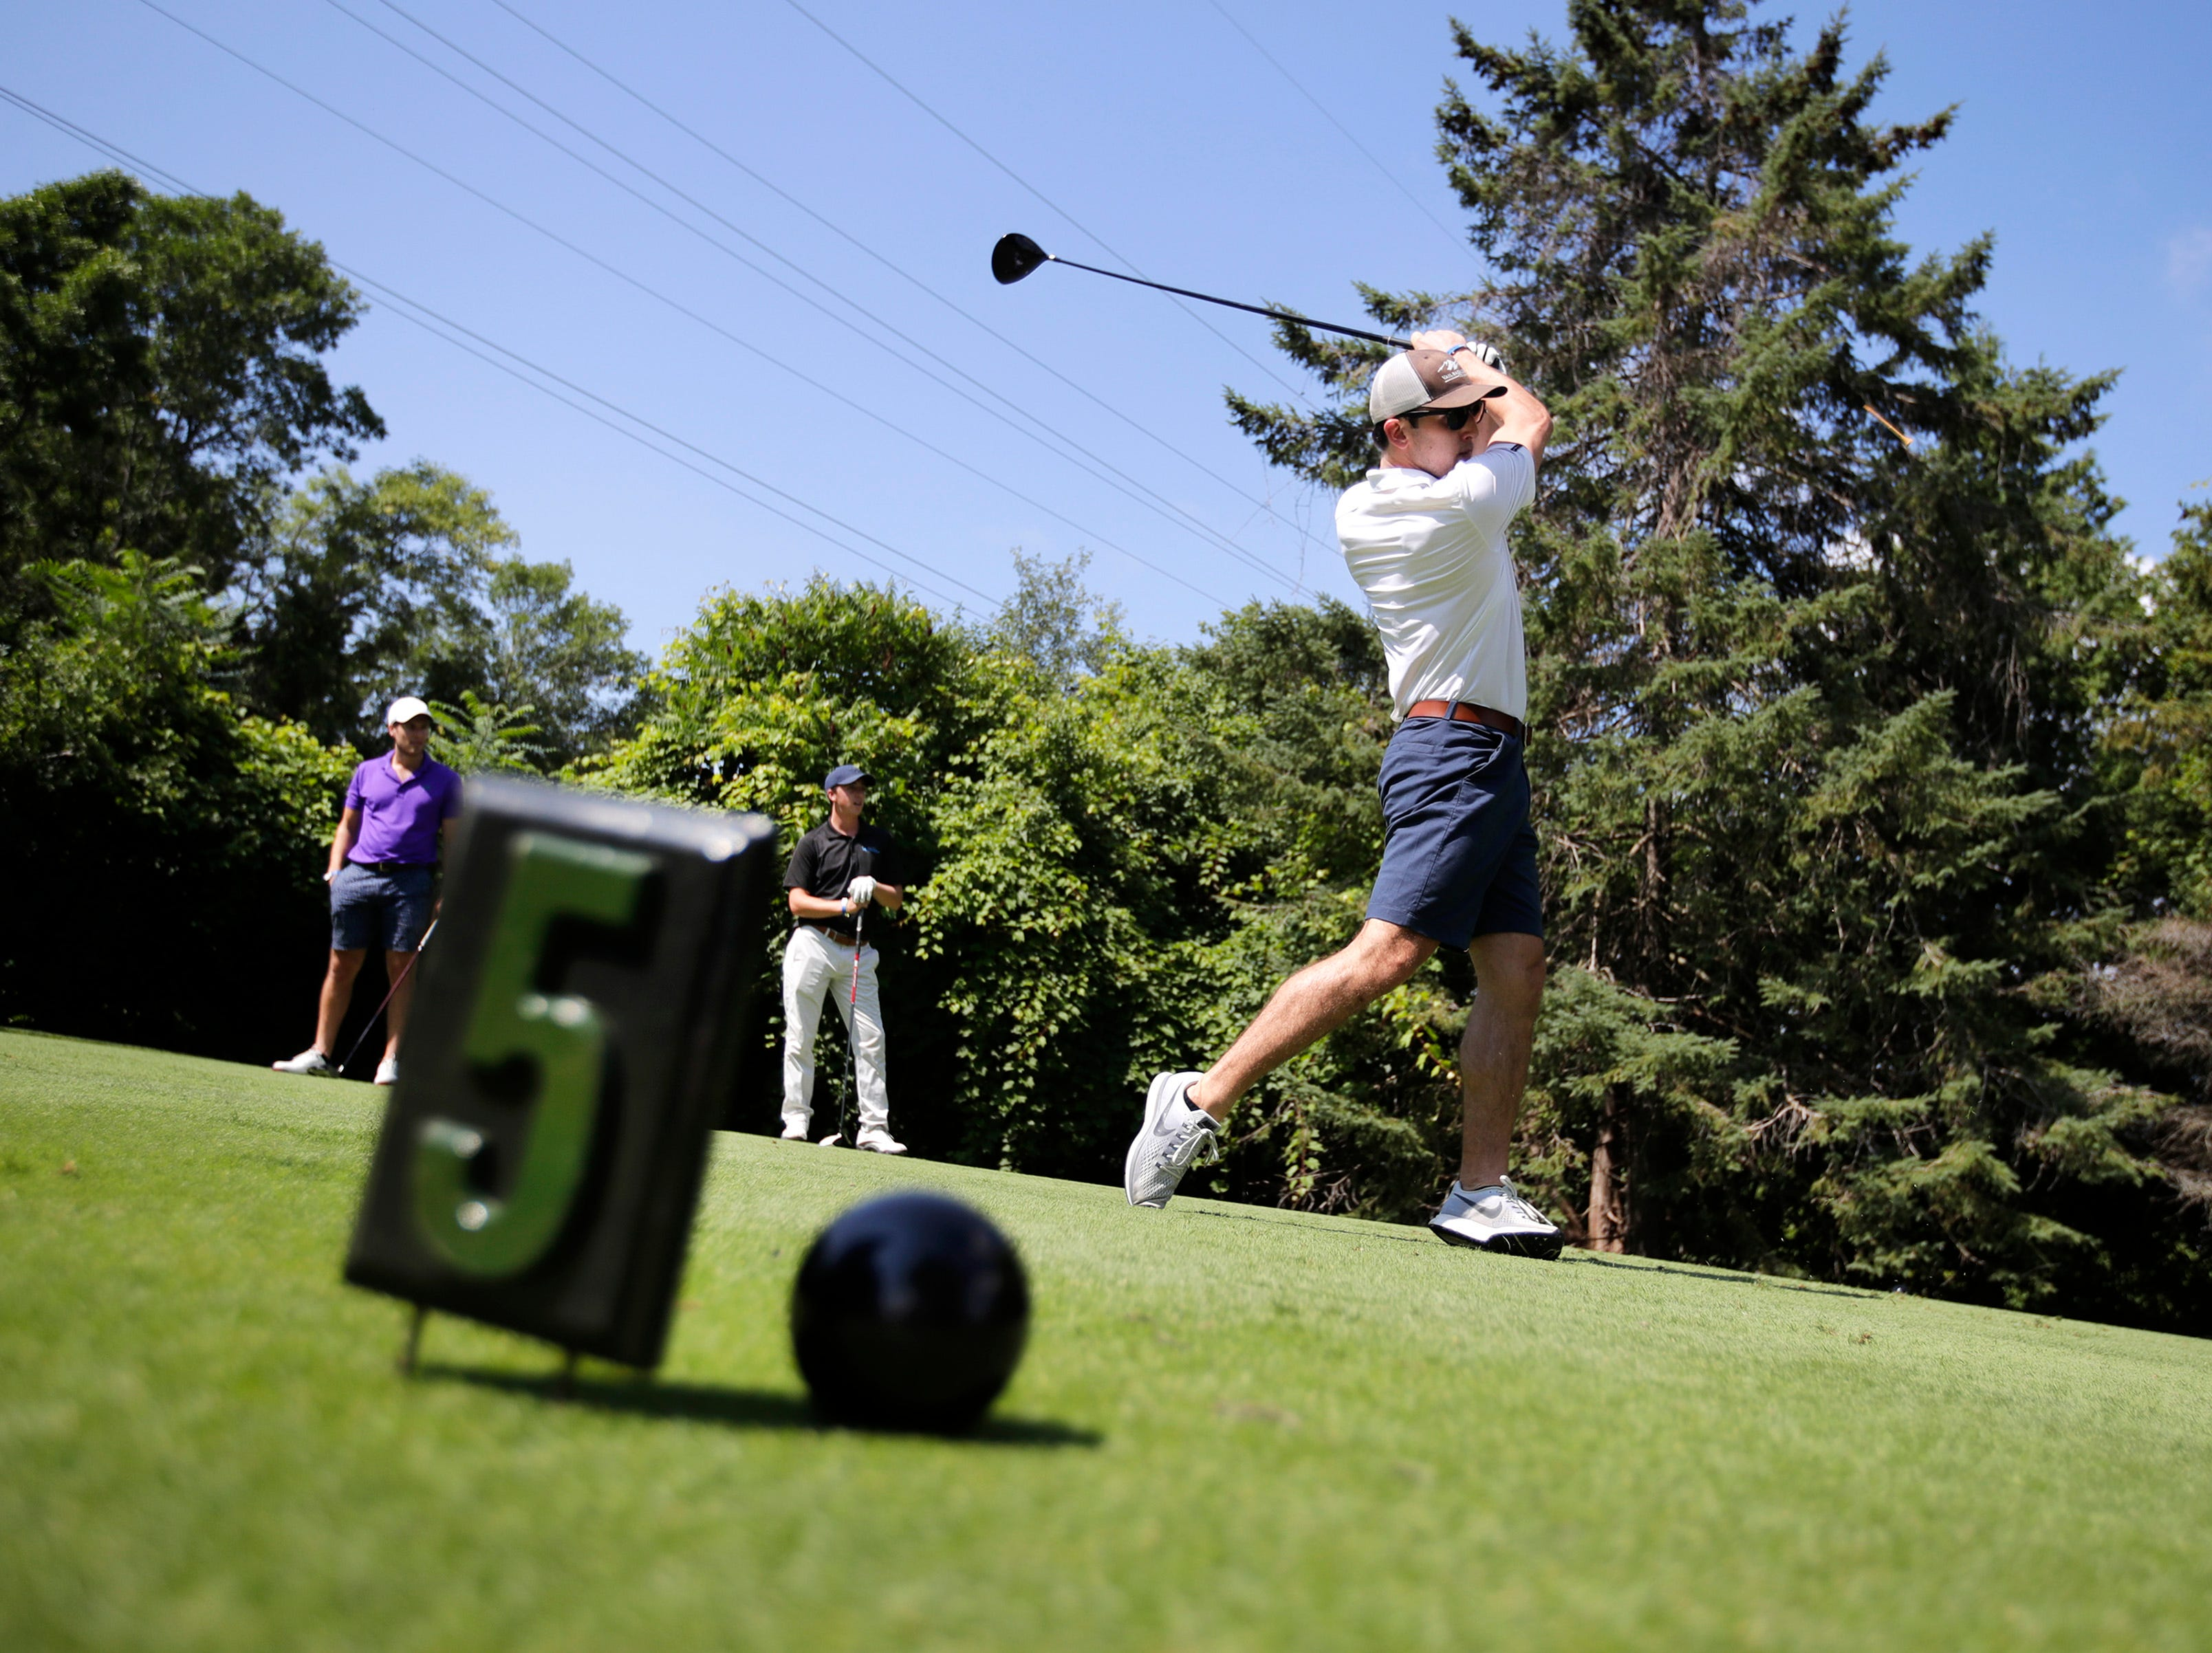 Thomas Schelble tees off during the U.S. Venture Open Wednesday, Aug. 8, 2018, at North Shore Golf Club in Menasha, Wis.